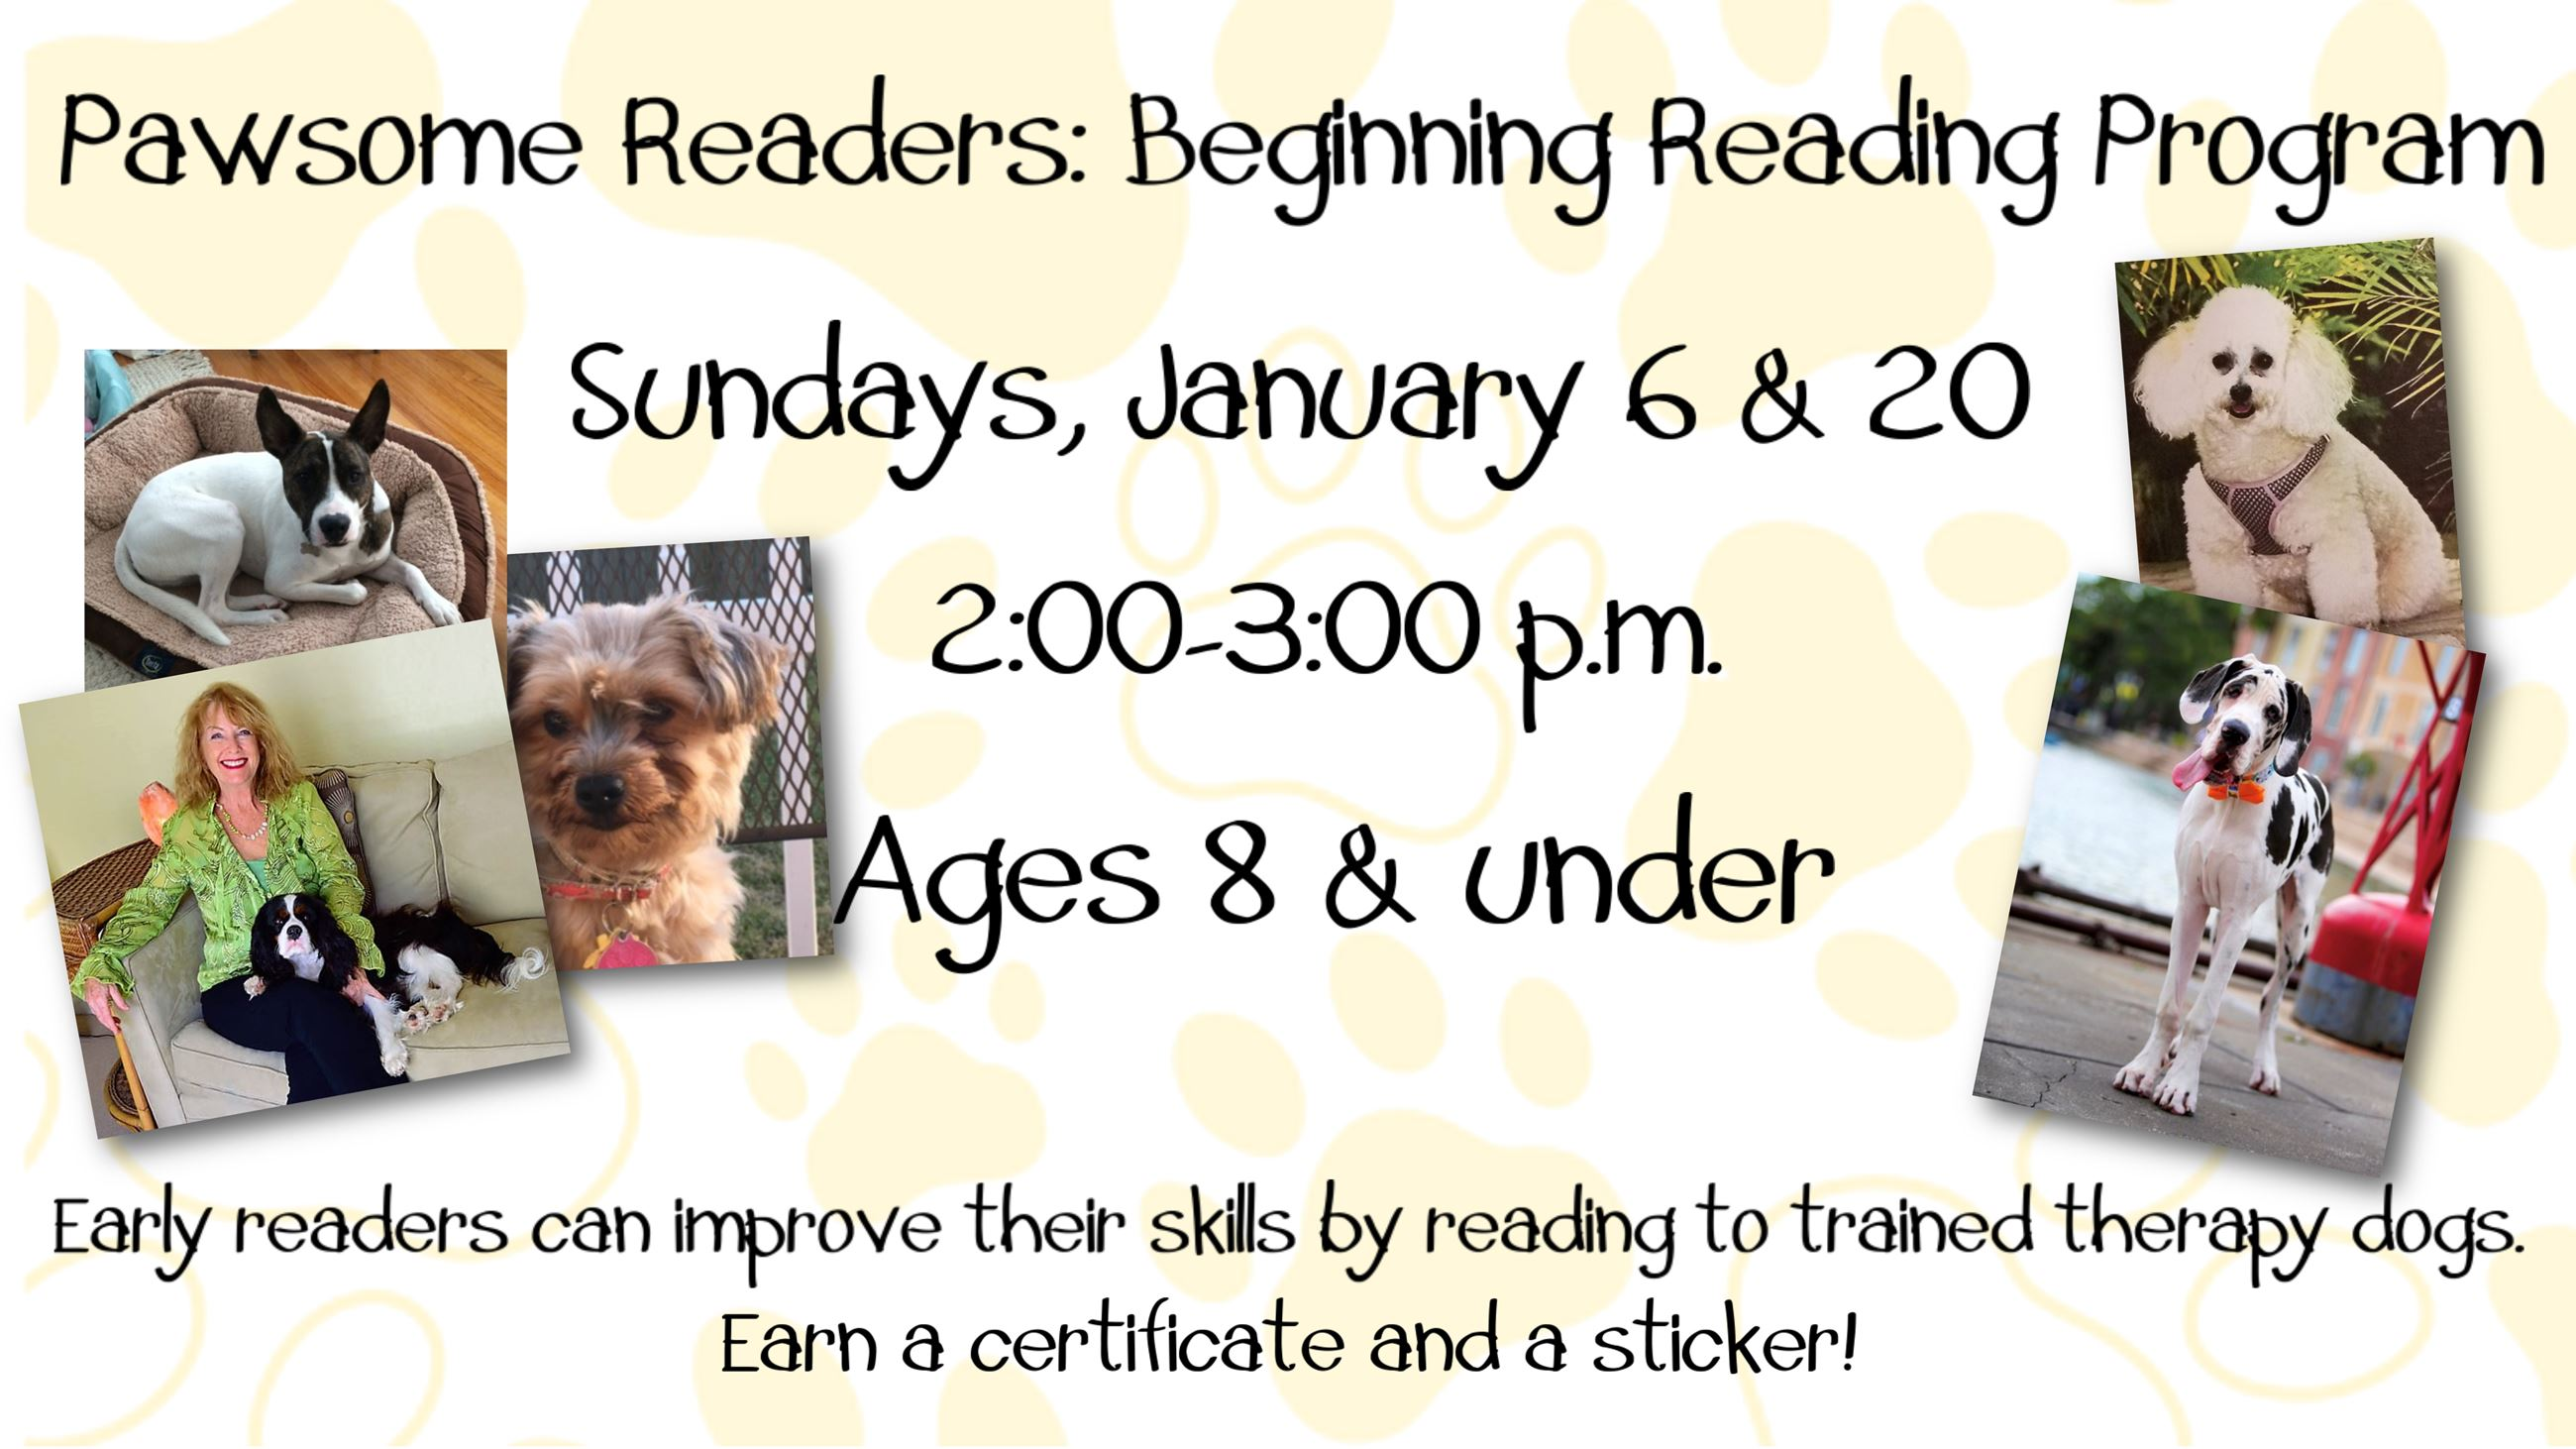 Pawsome Readers. January 6 & 20. 2 to 3 p.m. Ages 8 & under.